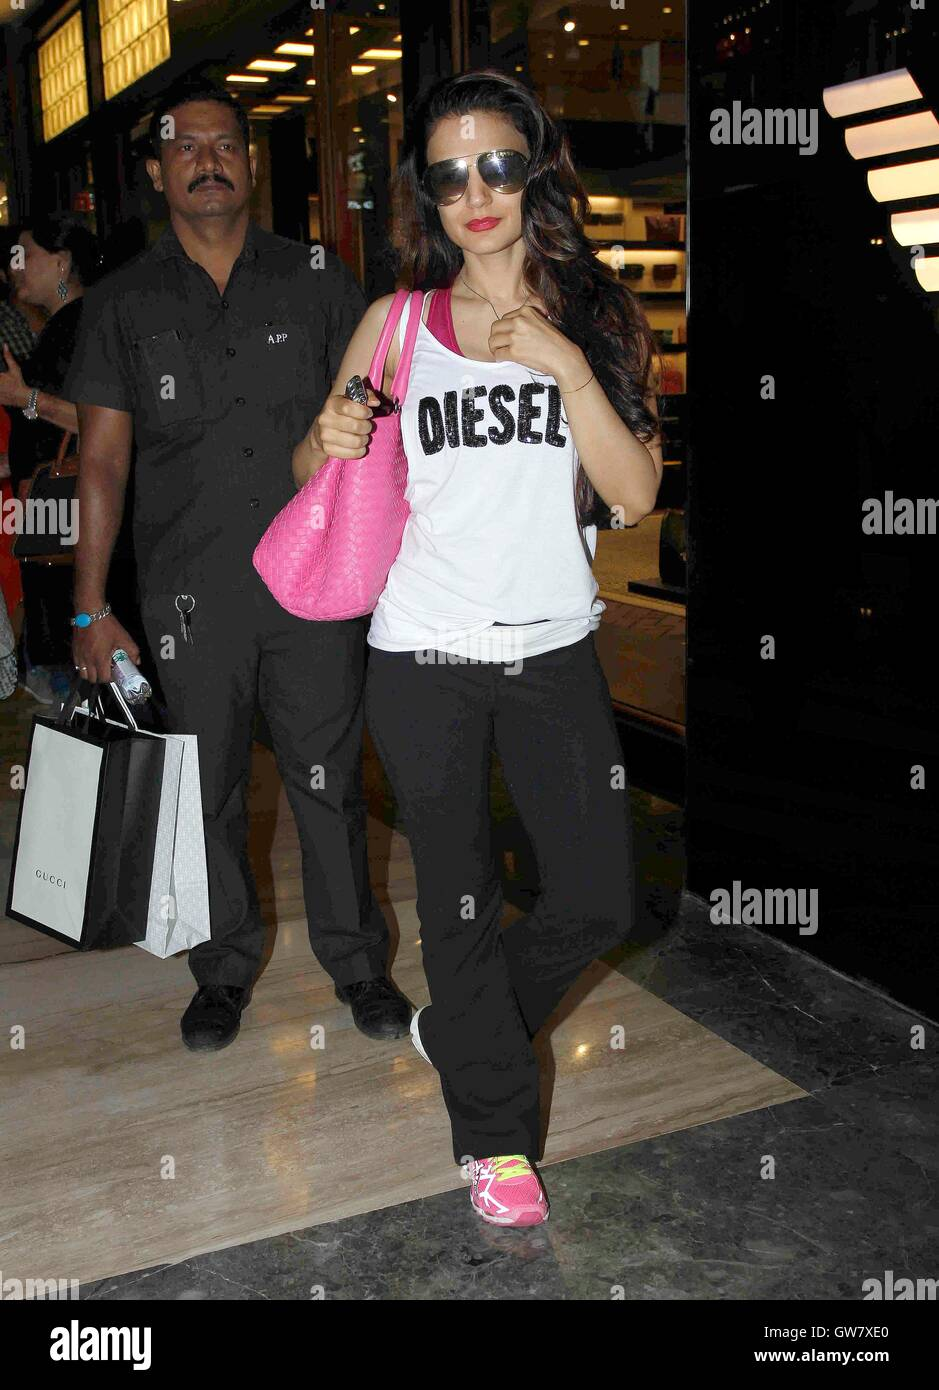 Ameesha Patel 2016 bollywood actor ameesha patel spotted at palladium mall, in